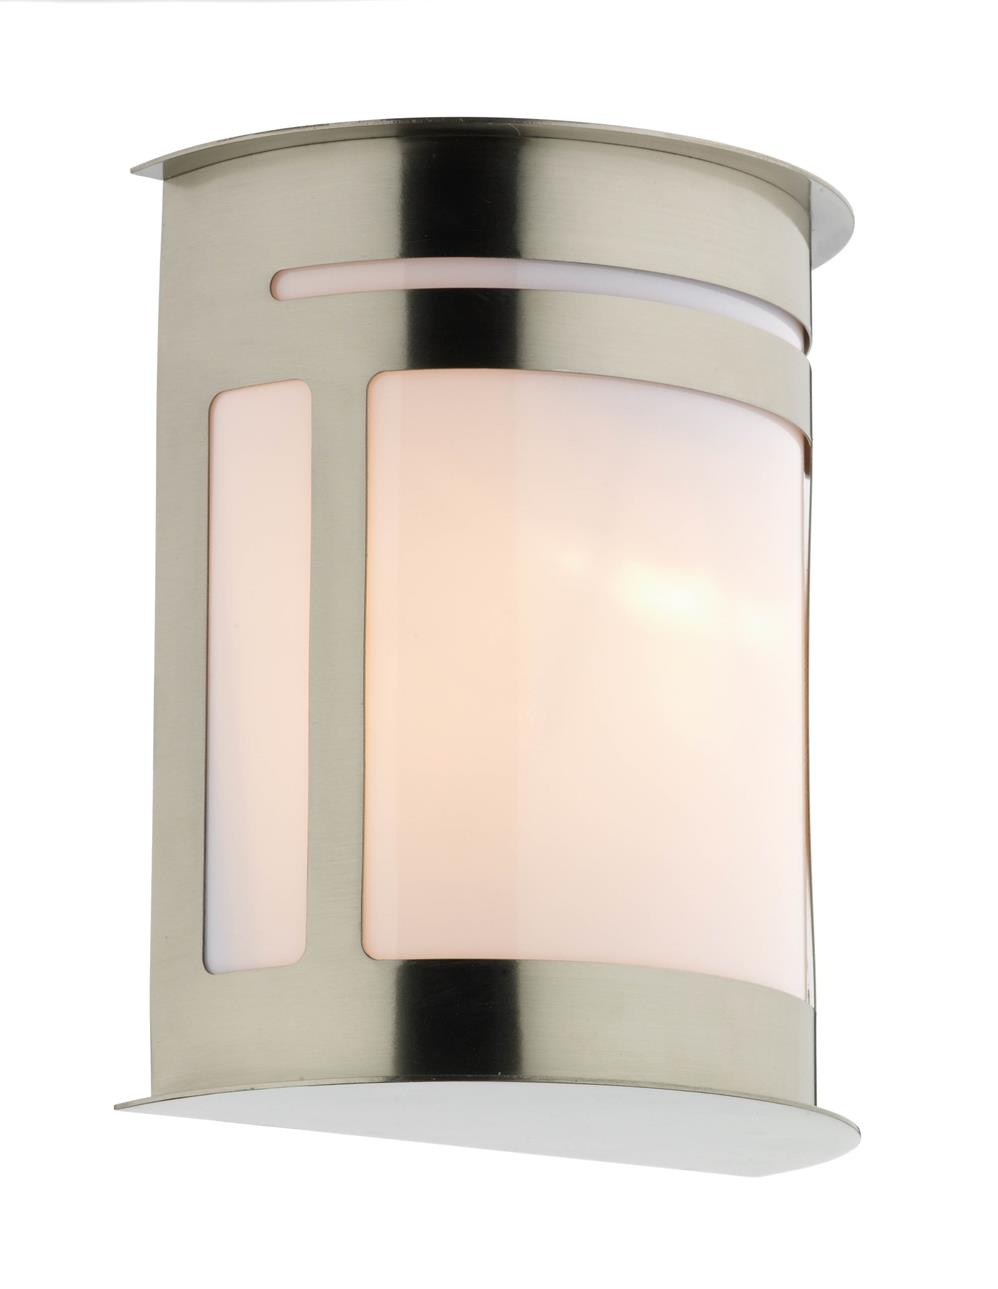 Dar ALU1644 Alumni Outdoor Oval Wall Light